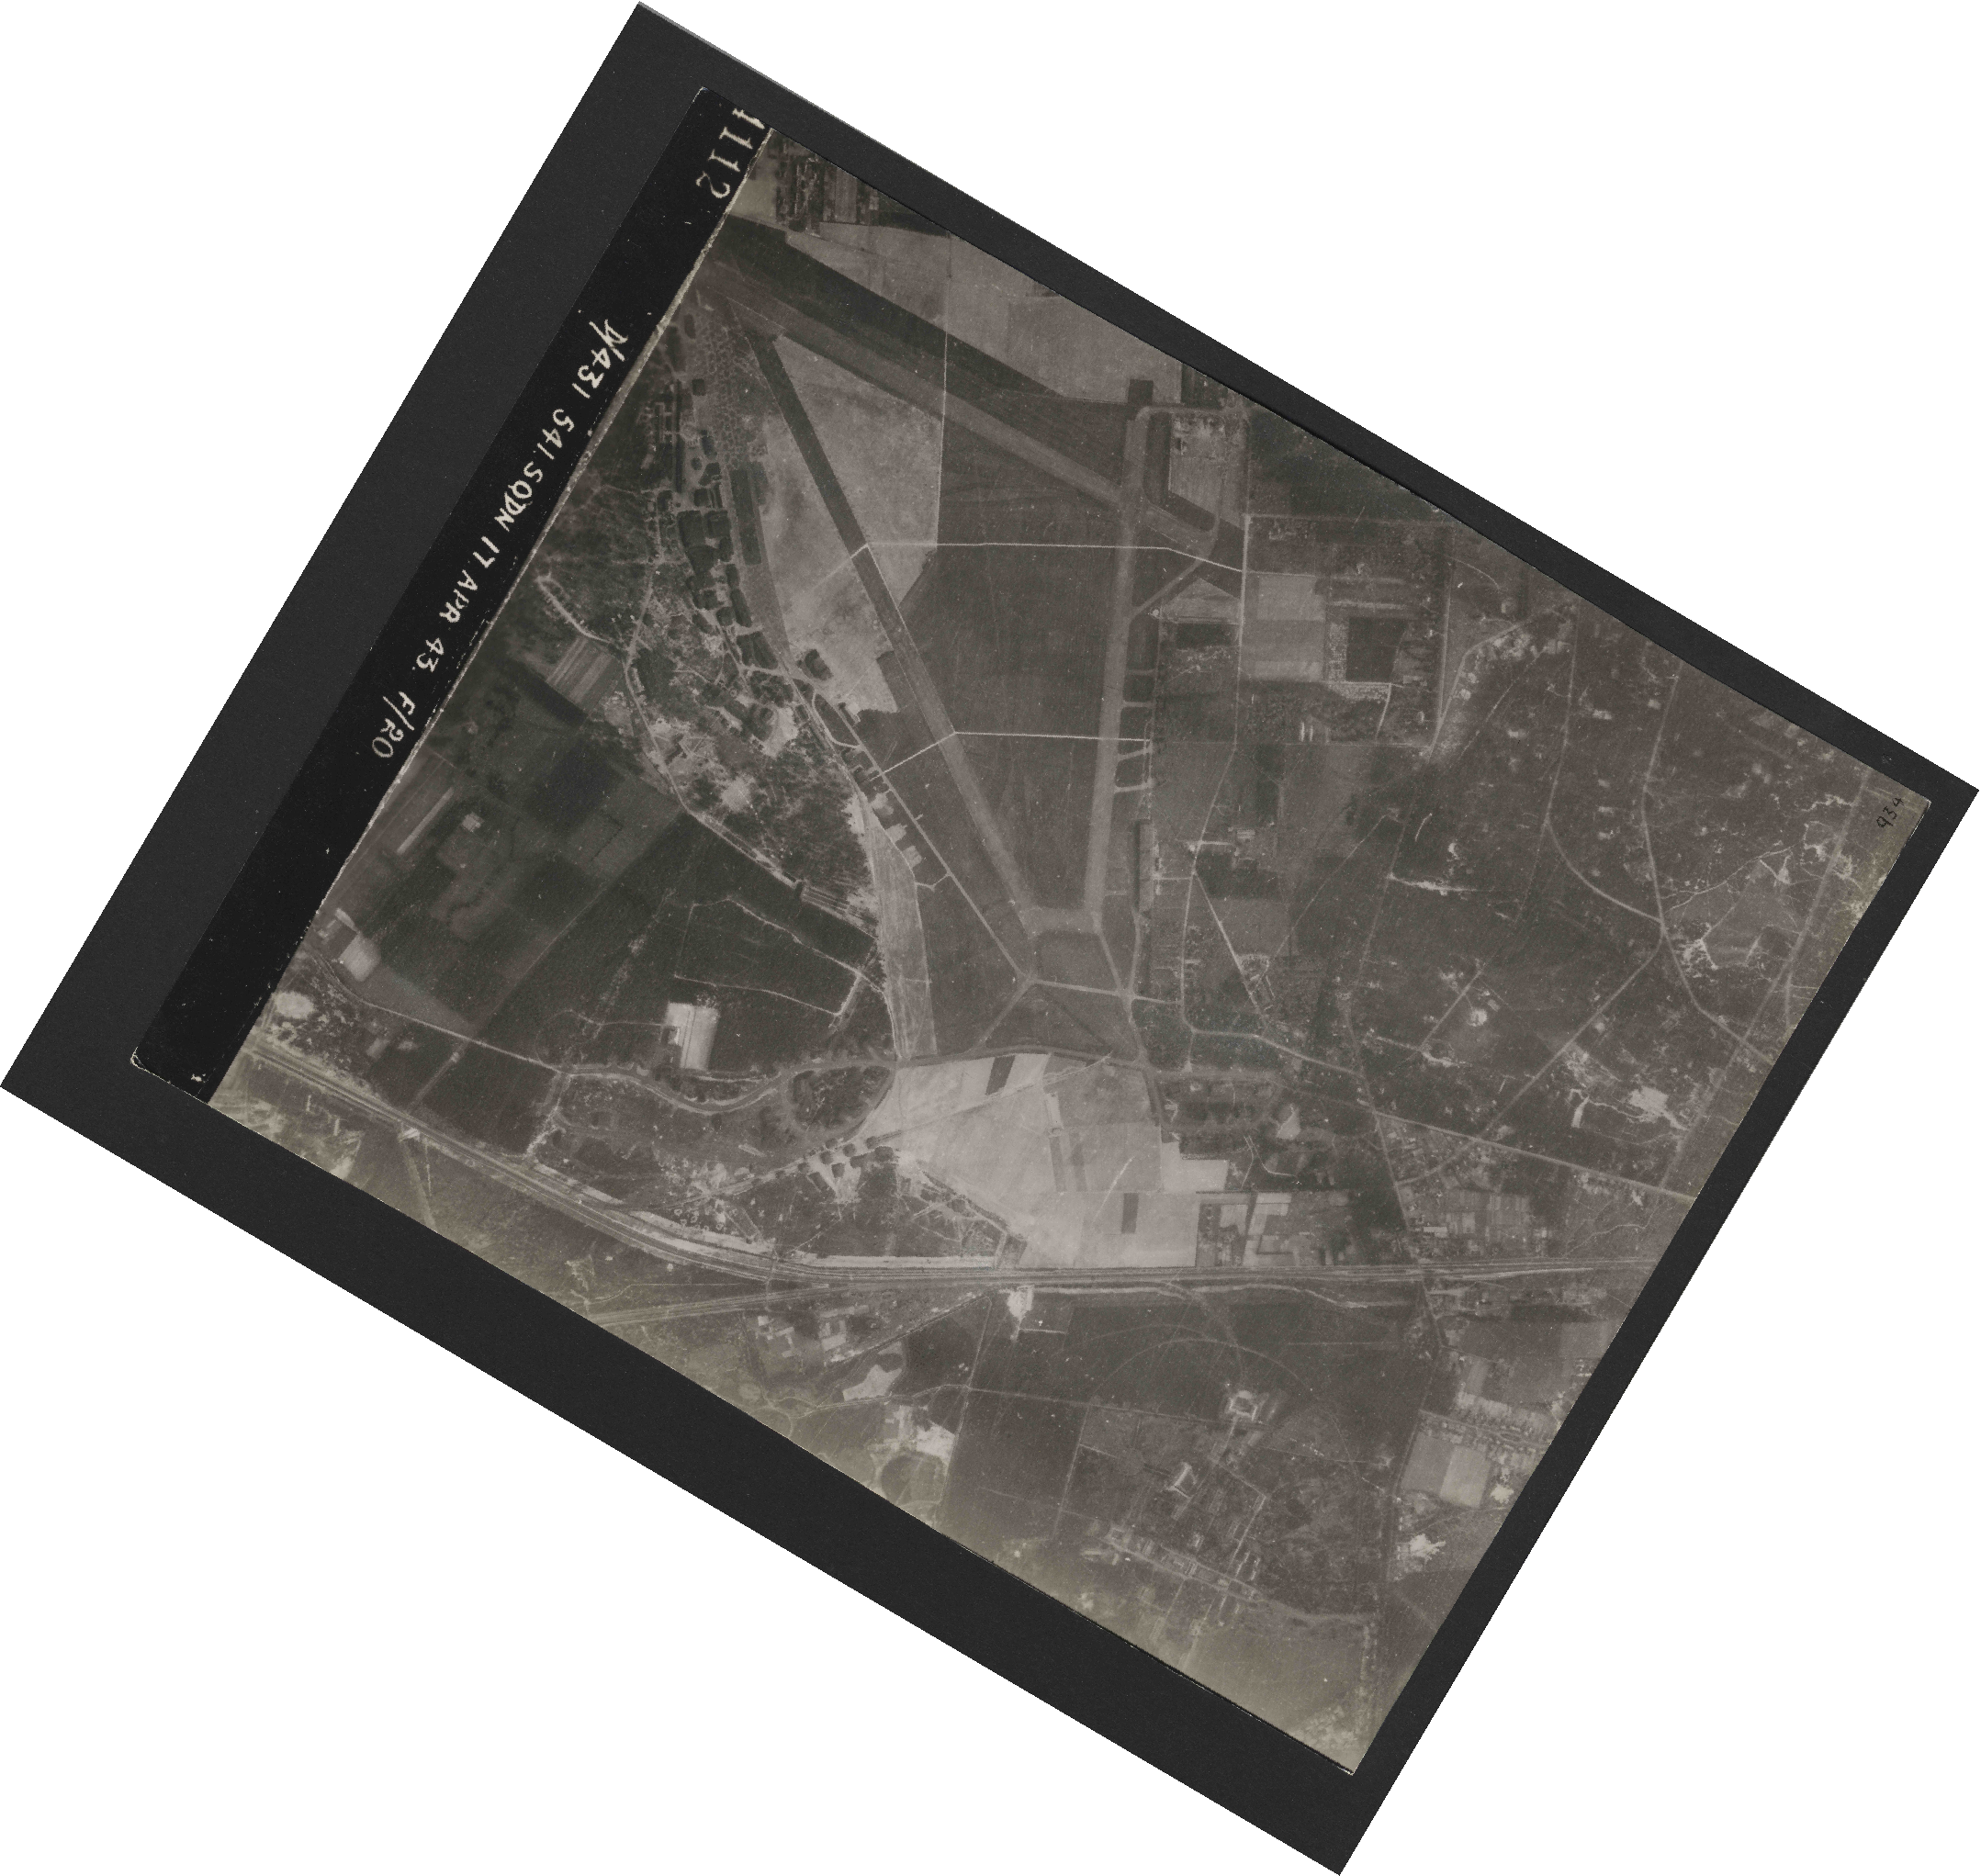 Collection RAF aerial photos 1940-1945 - flight 329, run 06, photo 4112